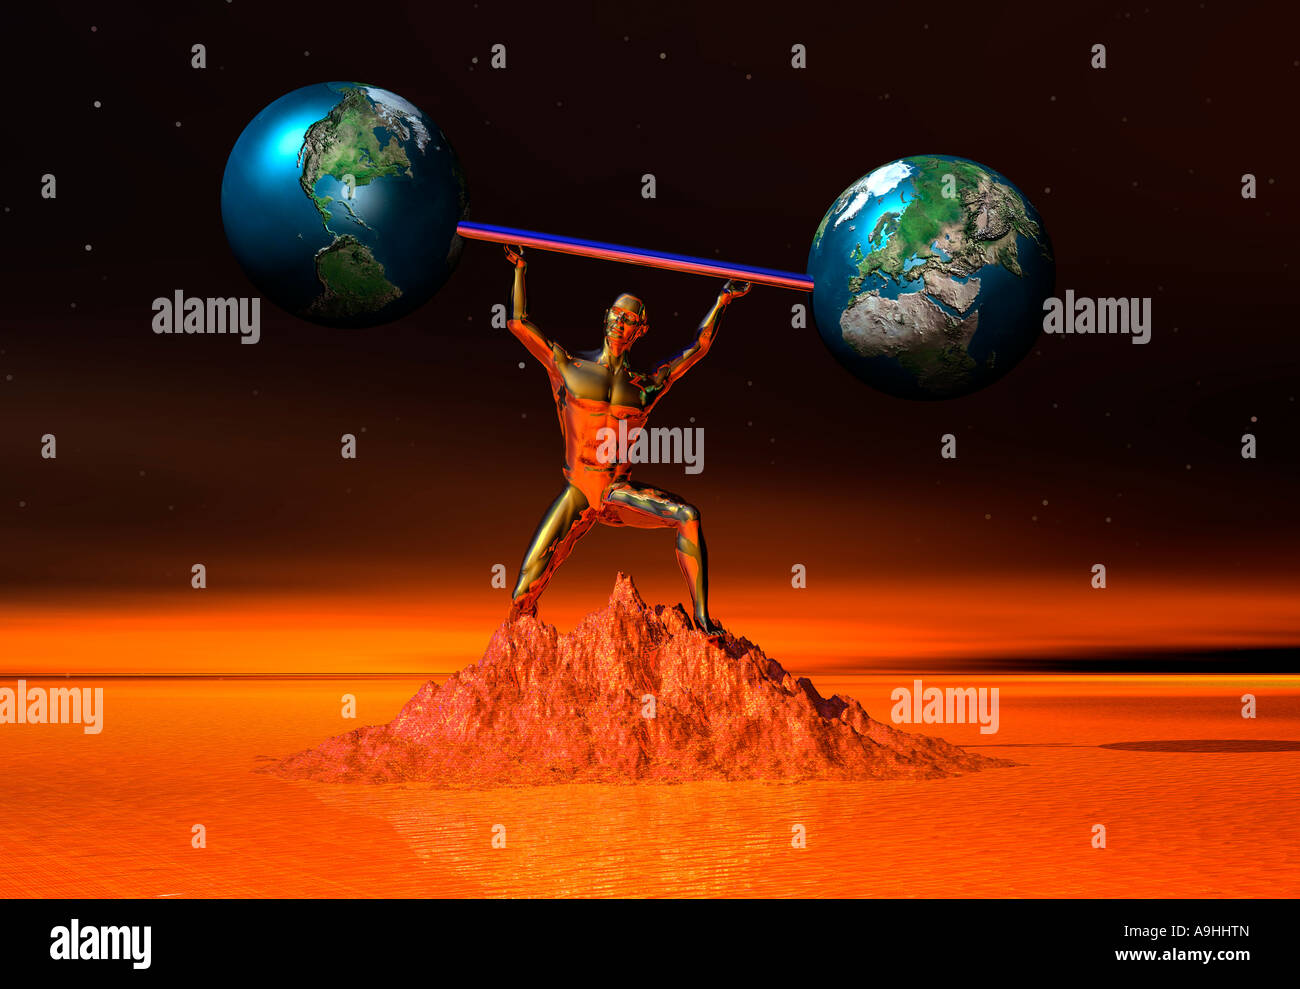 Adam Or Hercules? - Stock Image